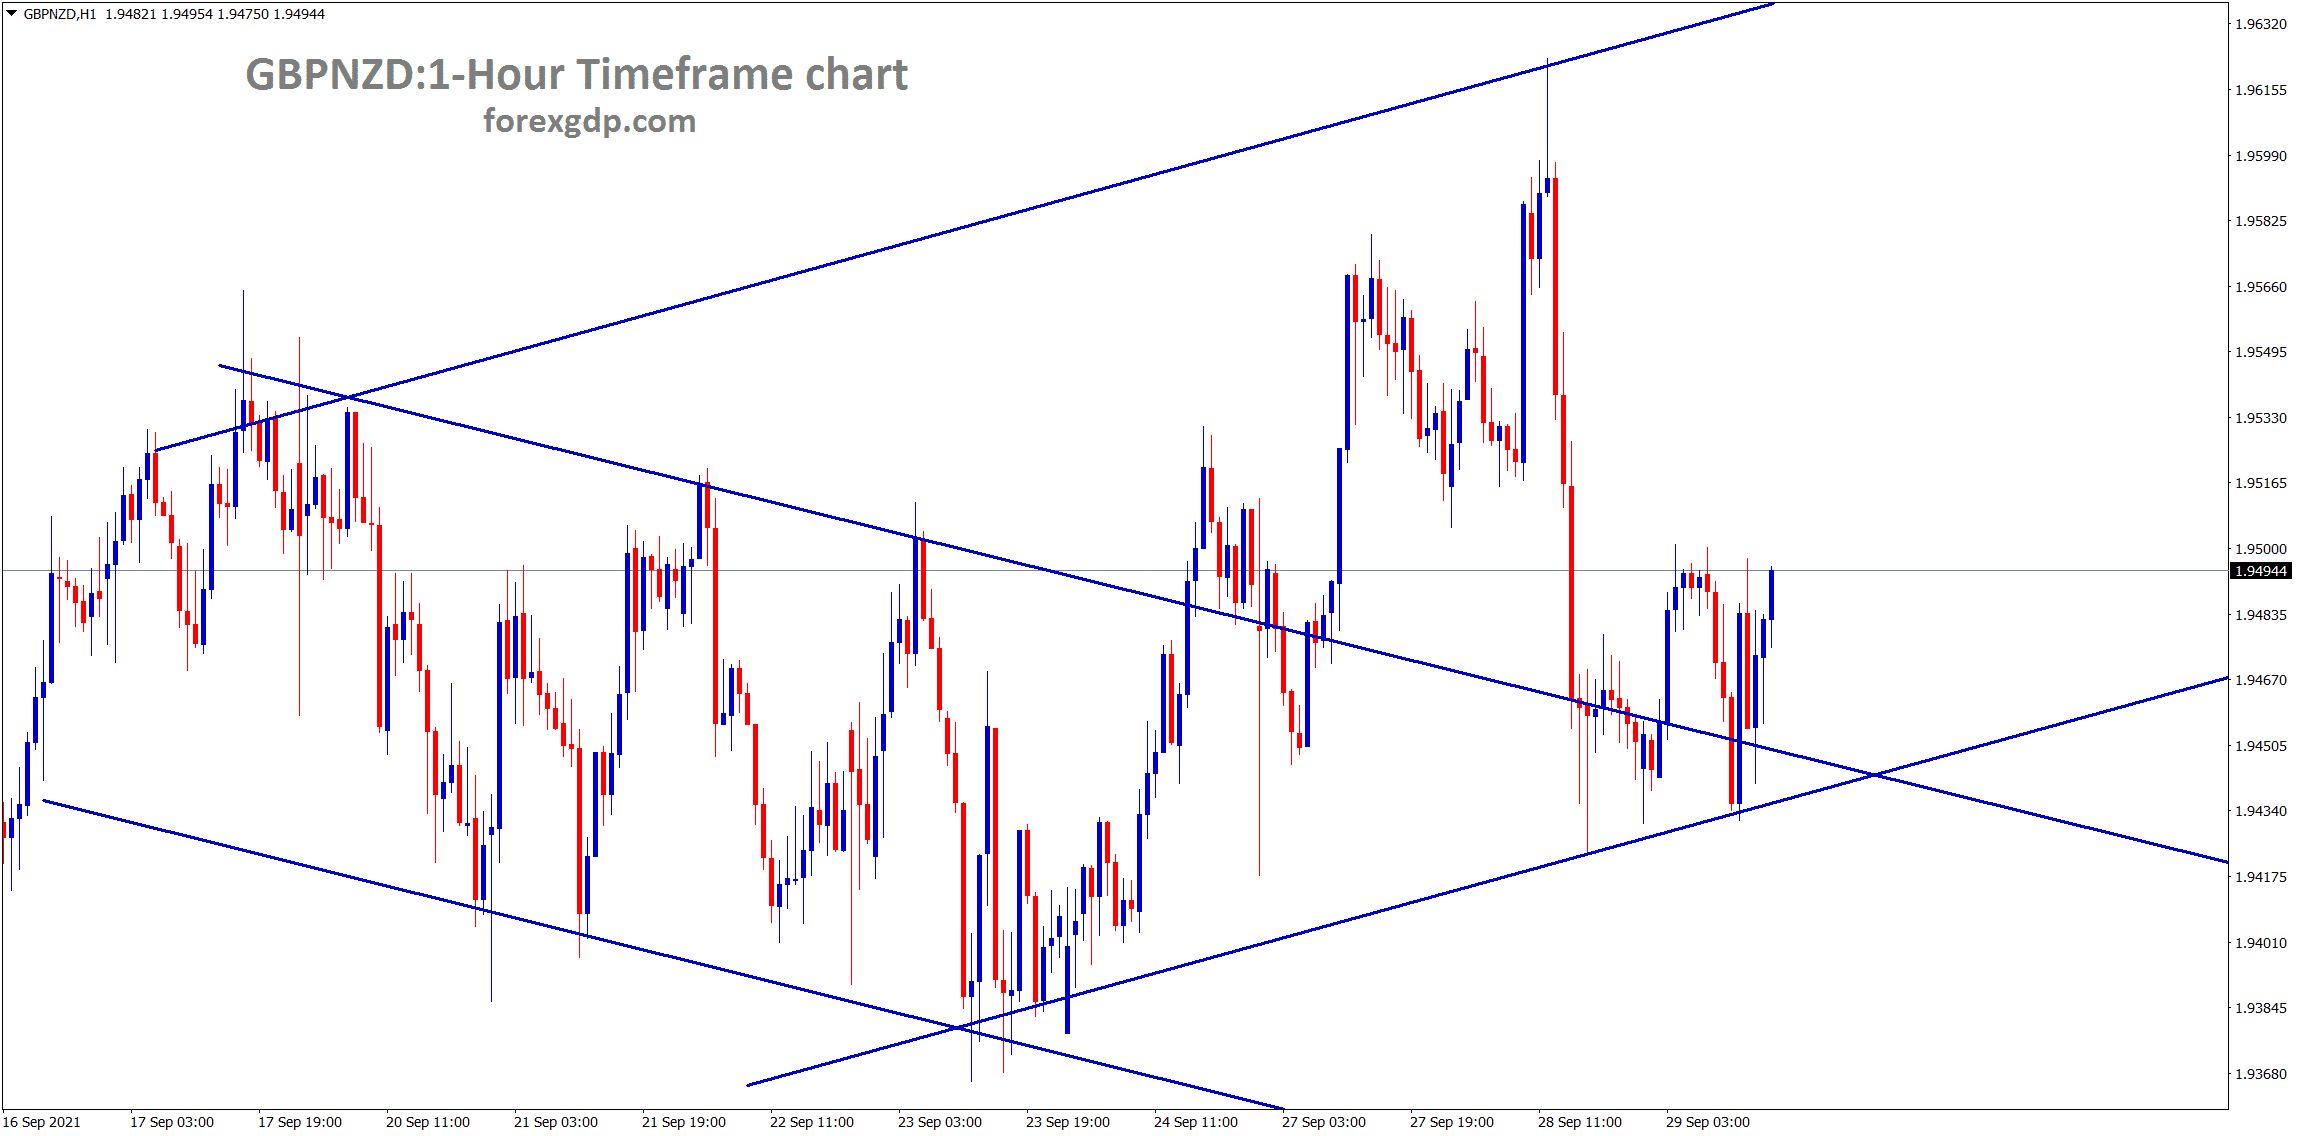 GBPNZD is moving in a channel ranges